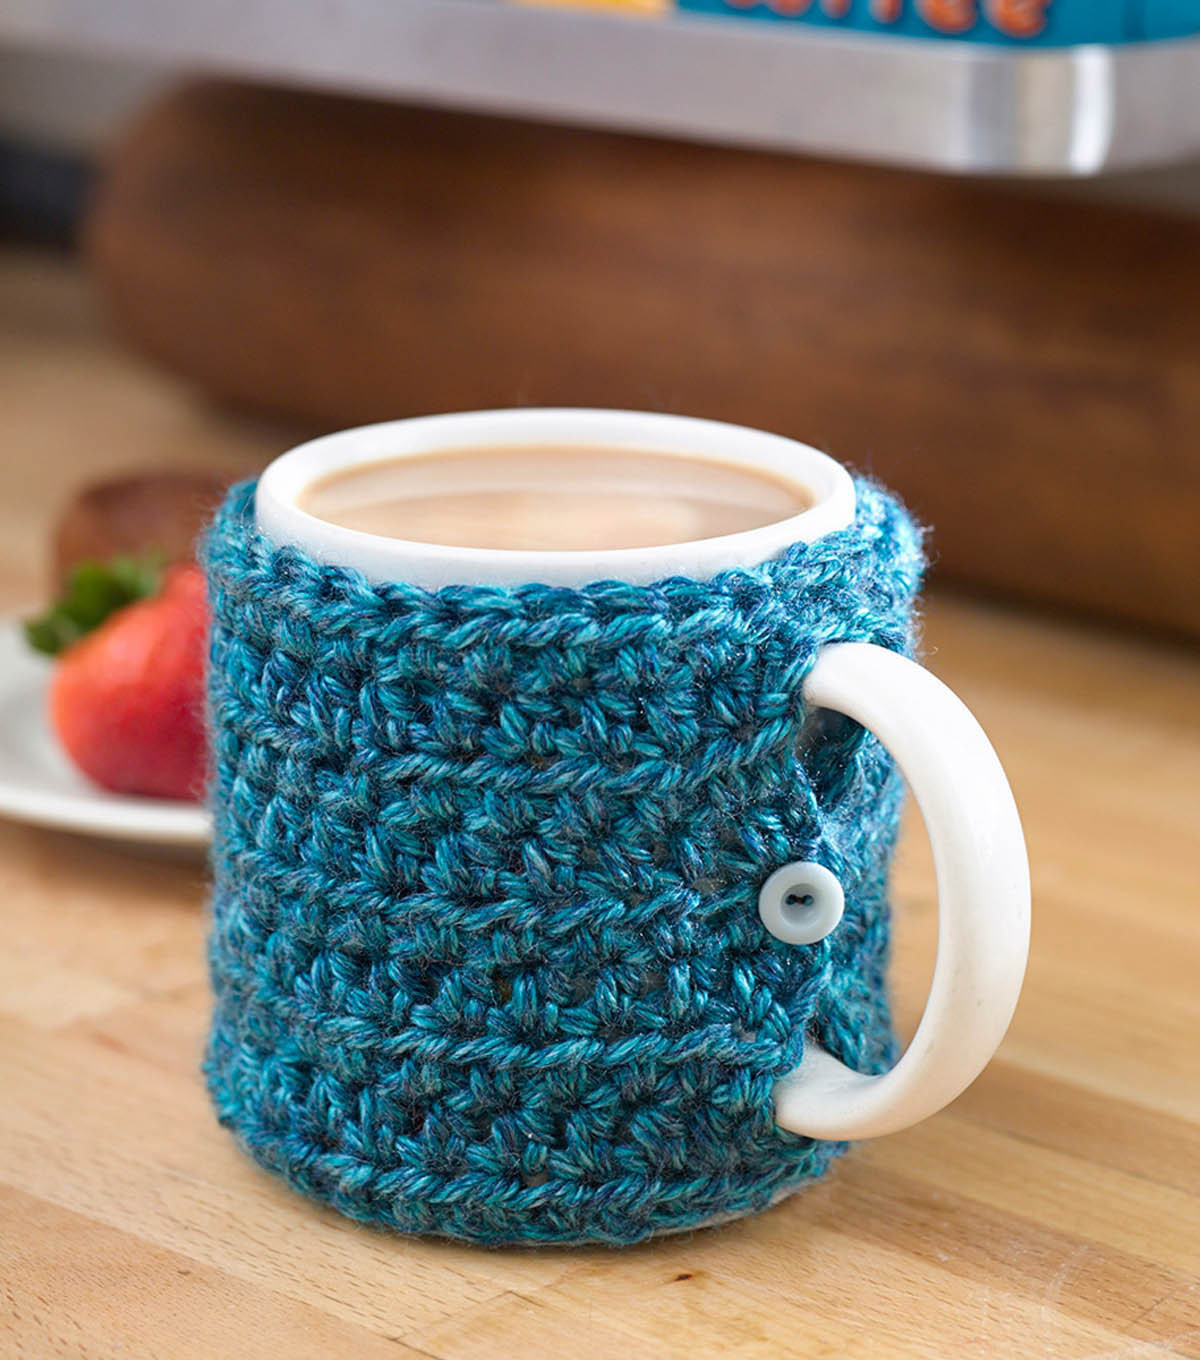 Crochet Coffee Cup Cozy Best Of Craftdrawer Crafts Free Easy to Crochet Mug Cozy Patterns Of Crochet Coffee Cup Cozy Luxury Happy Holidays Handmade Gift Idea Crochet Heart Coffee